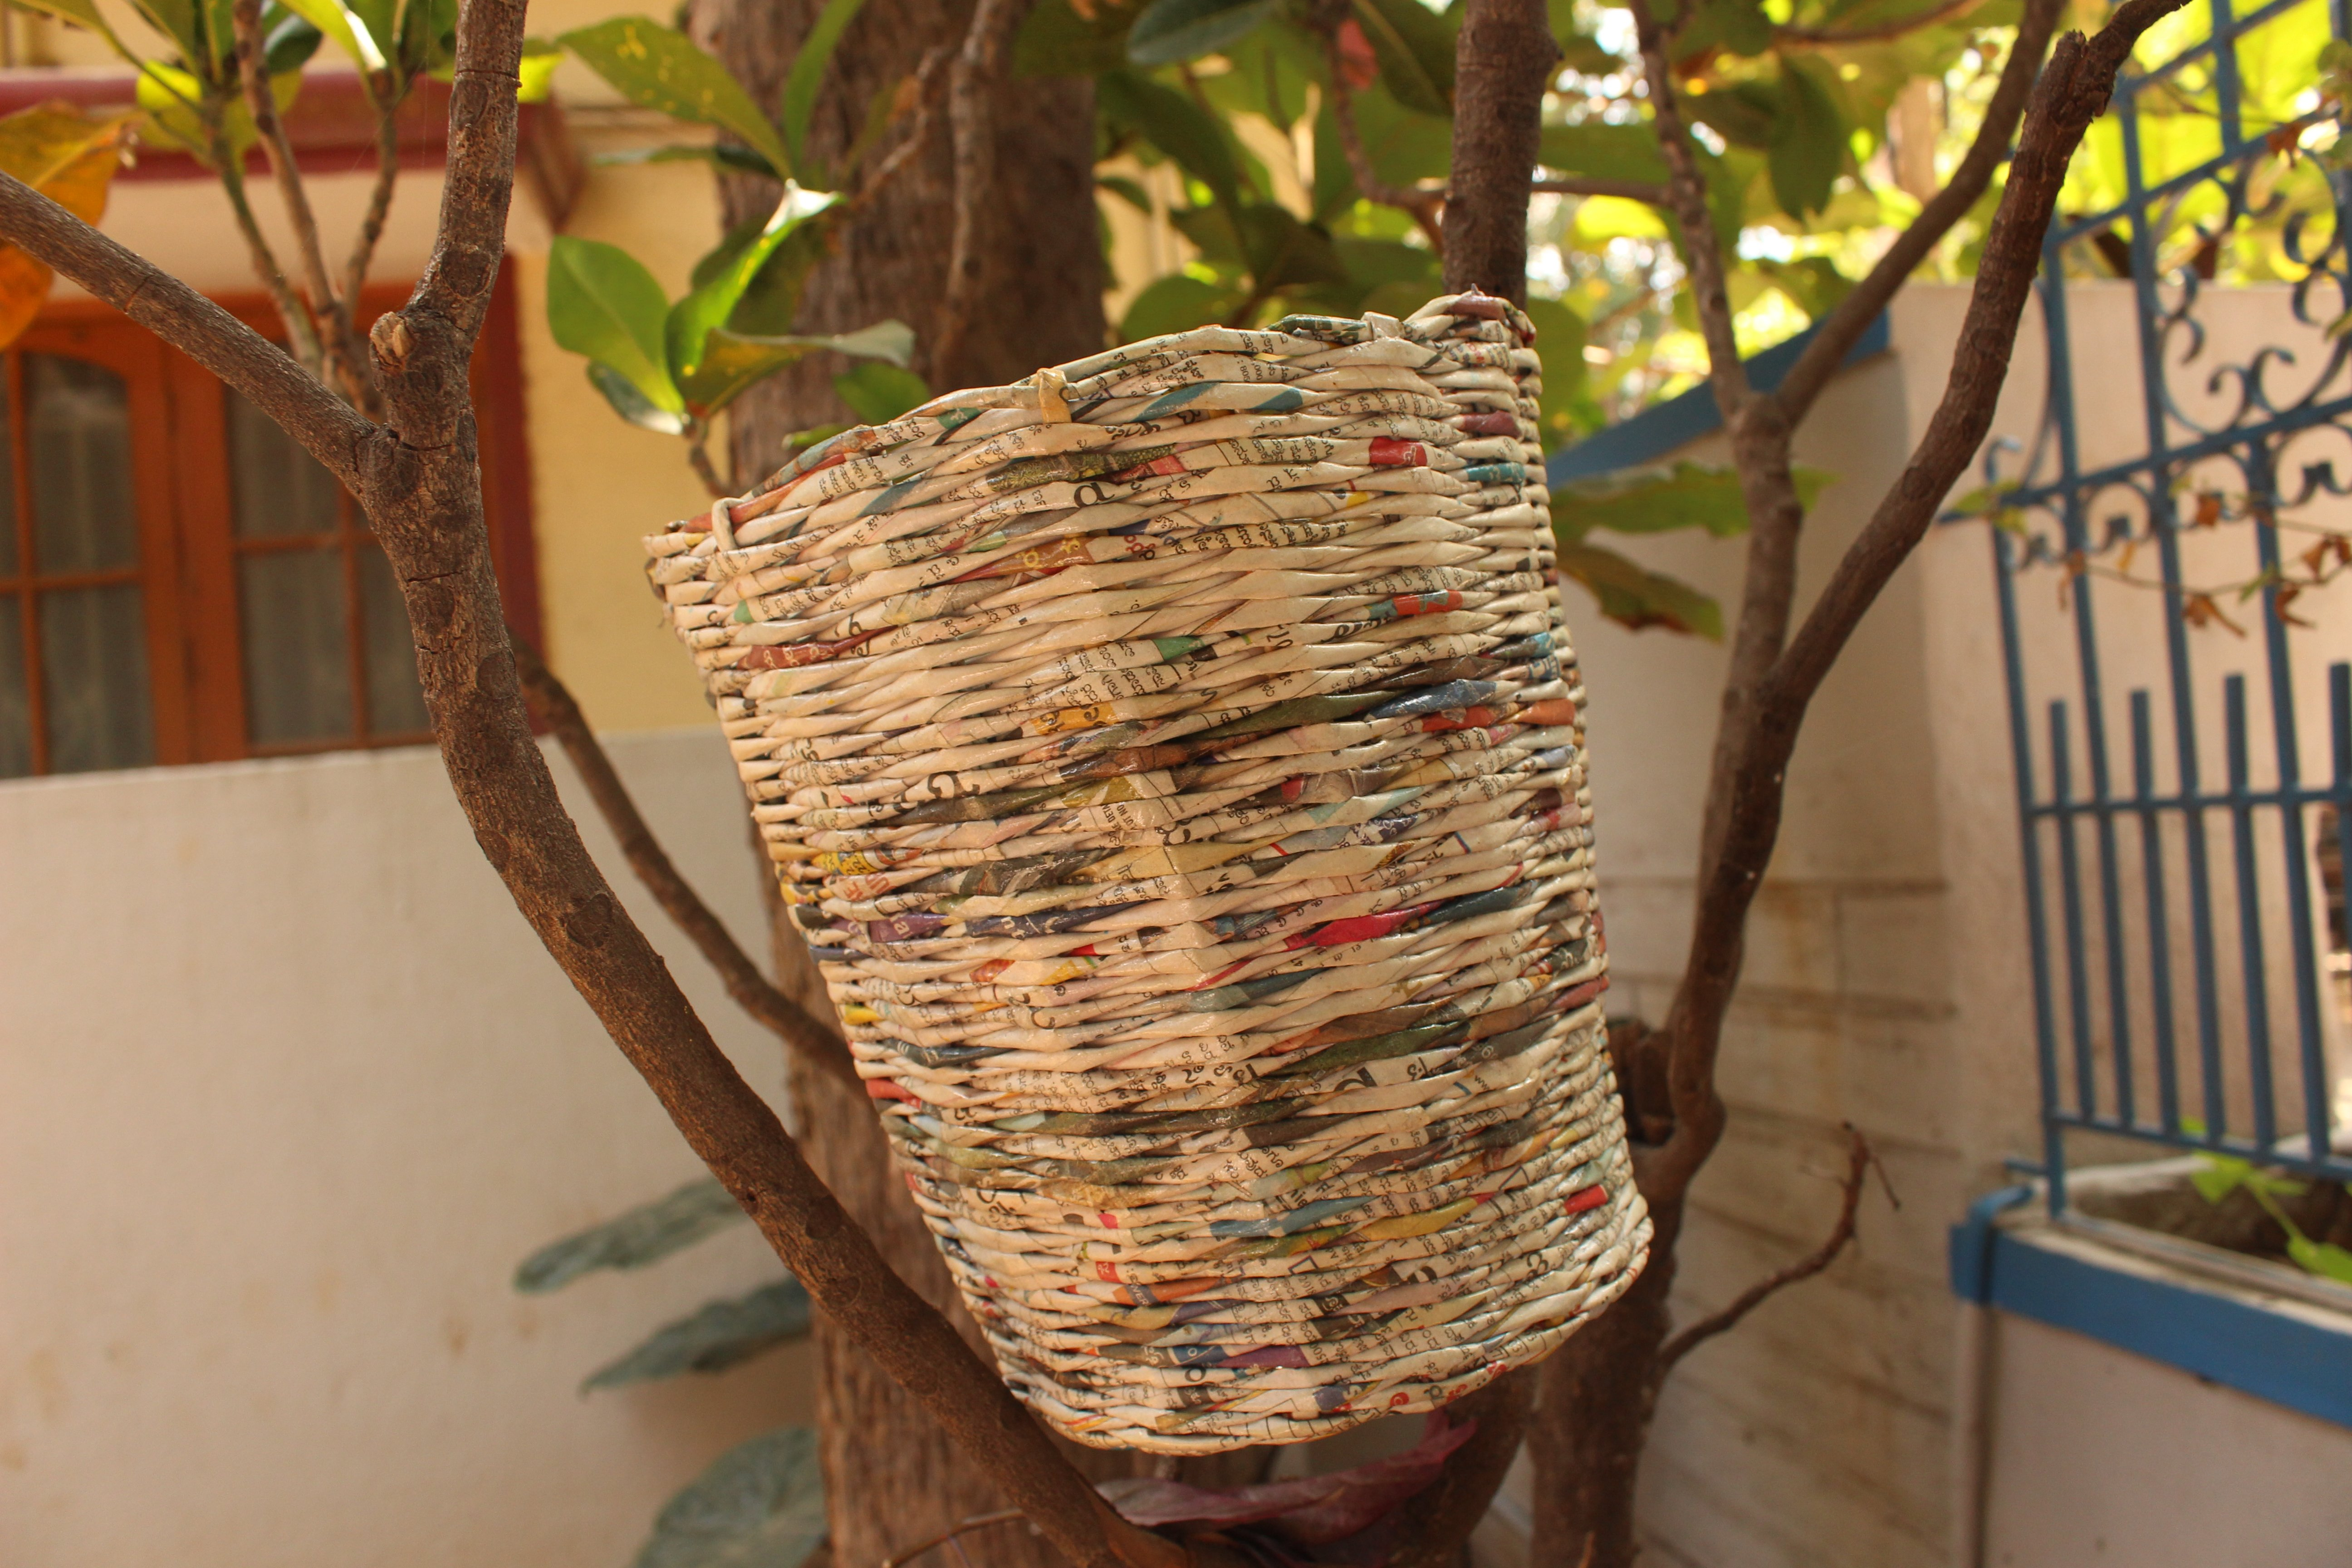 Upcycled Newspaper Dustbin